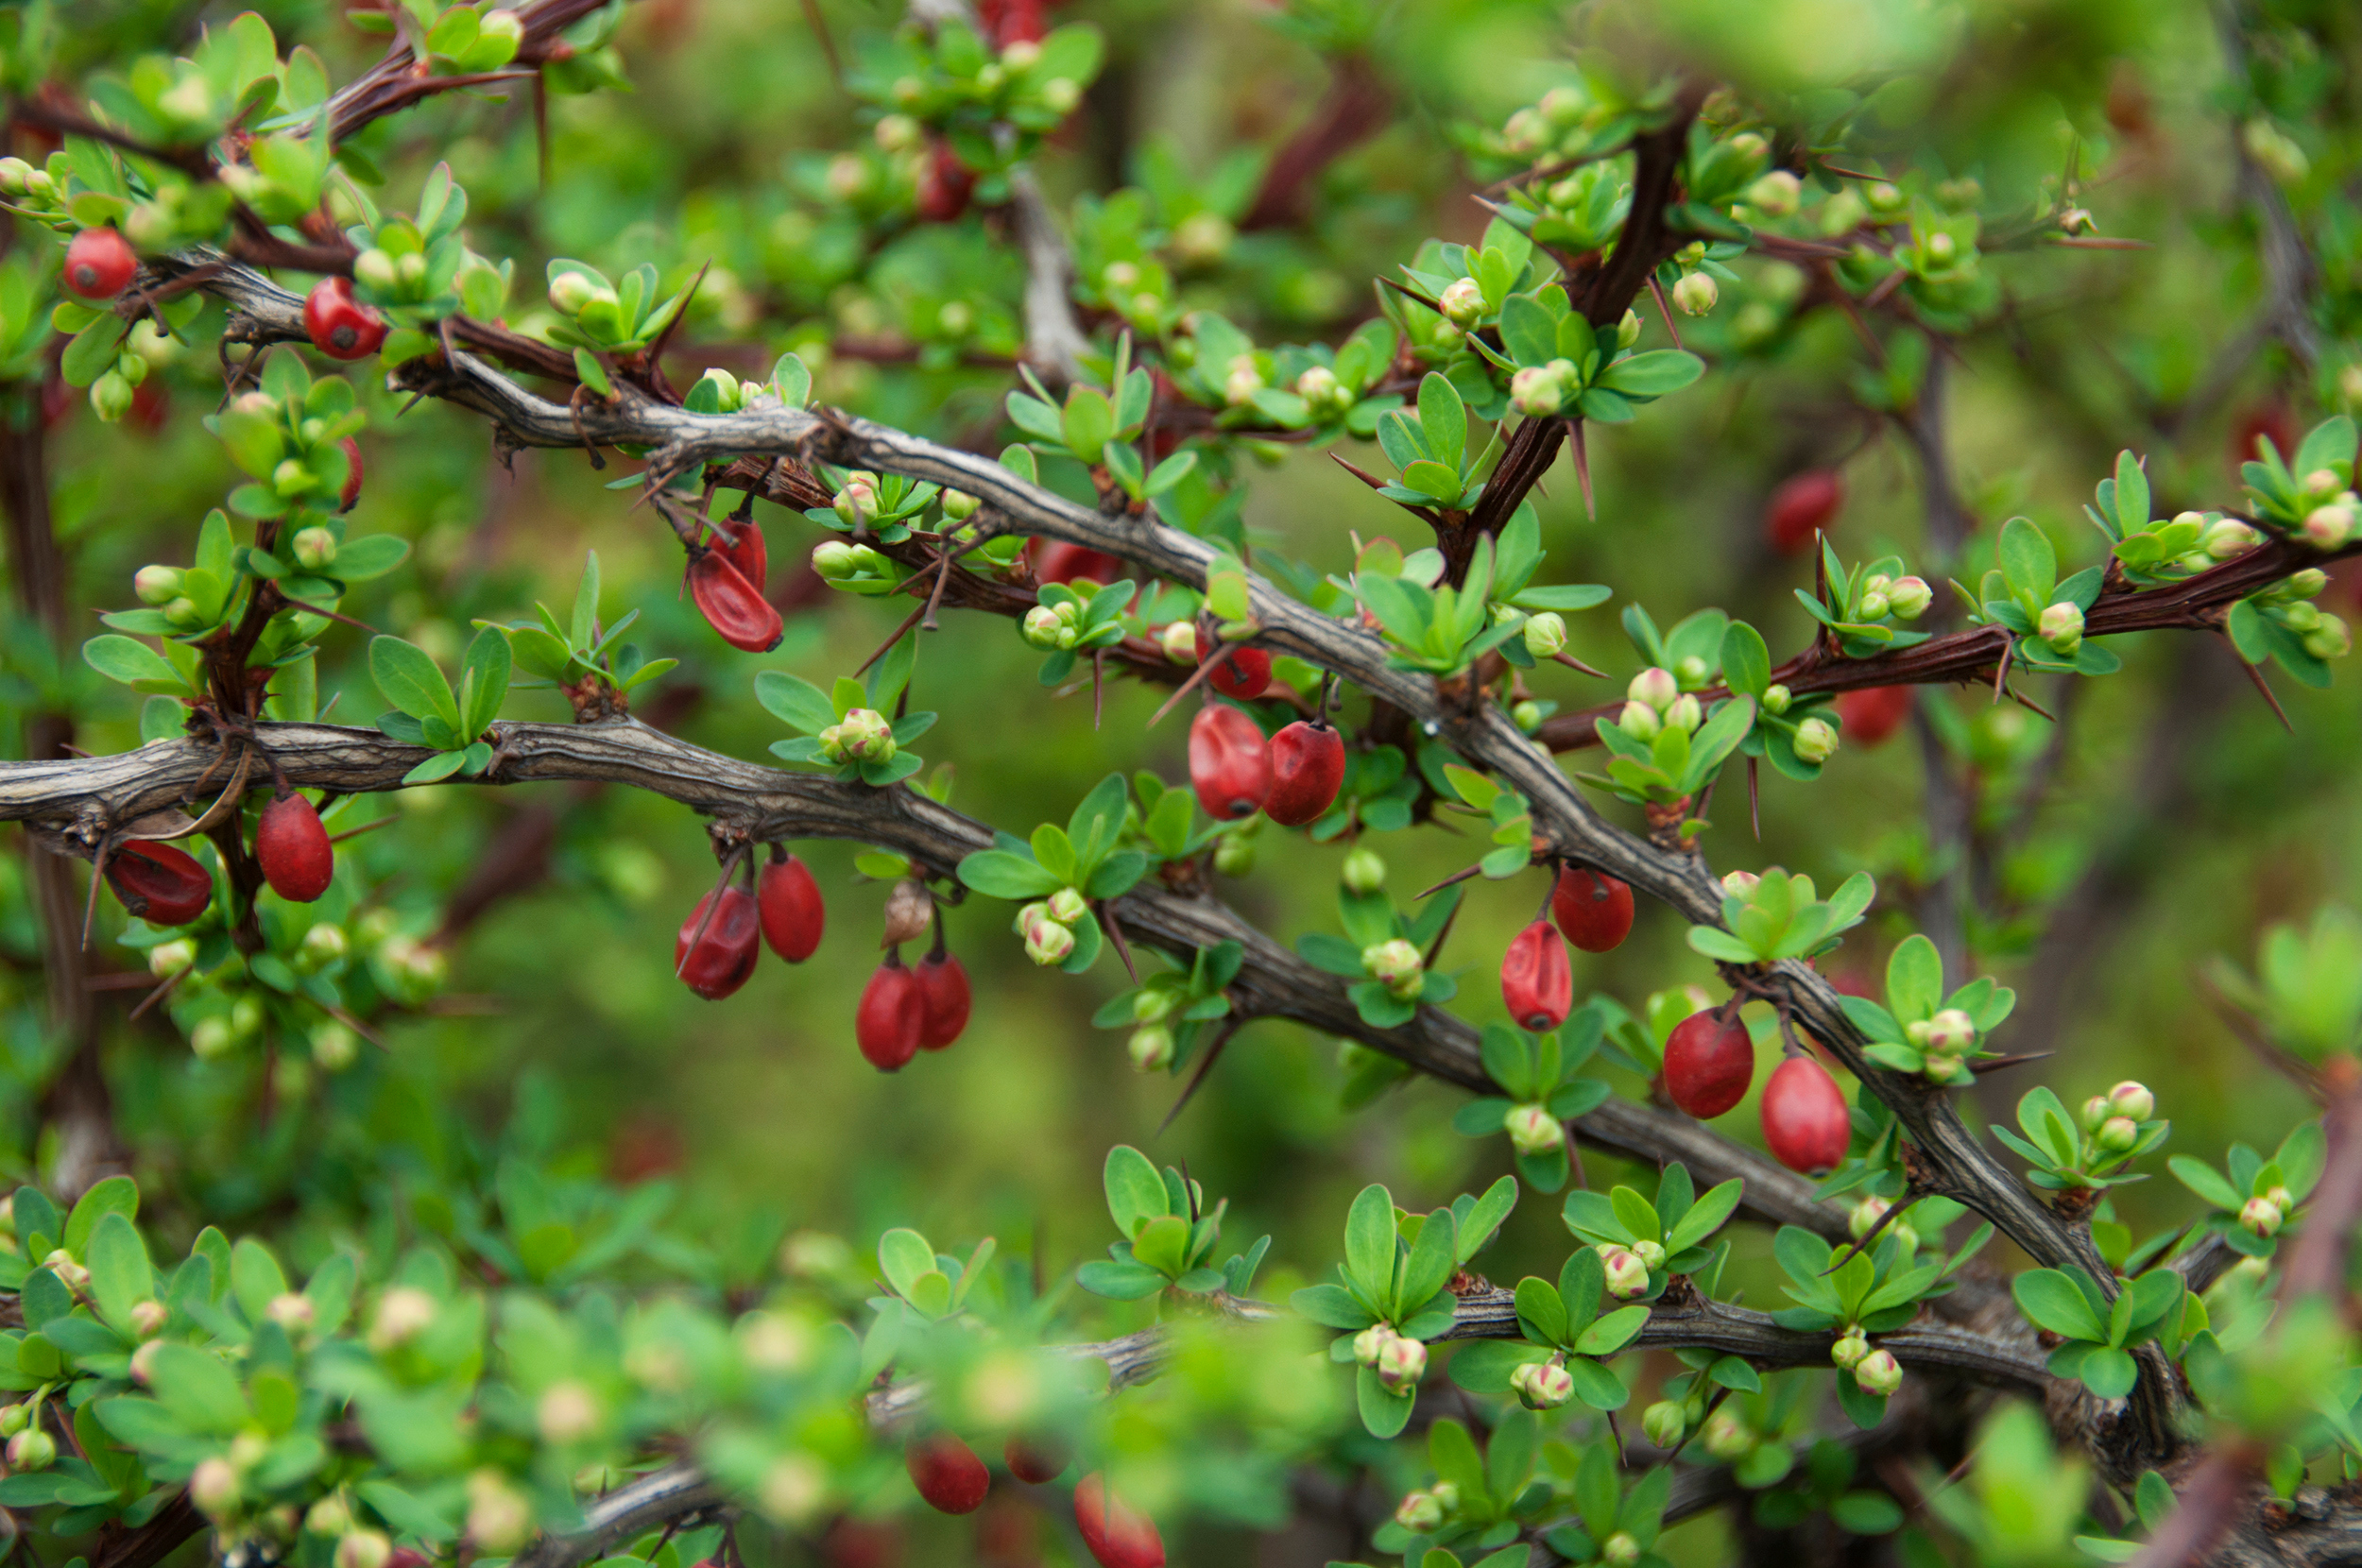 Japanese barberry (Berberis thunbergii) with new leaves, flower buds, and berries. (Getty Images)